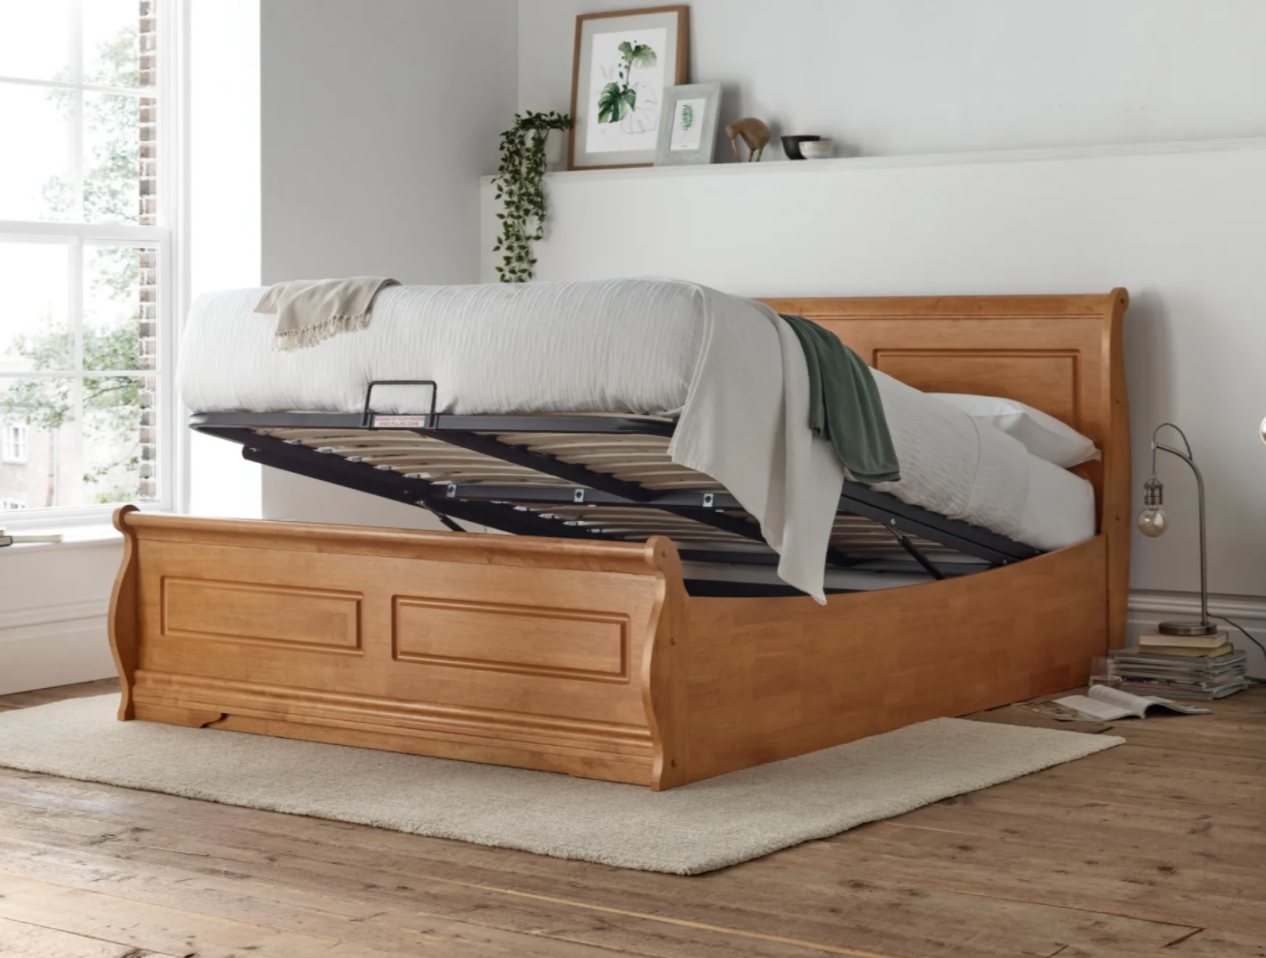 marseille new oak wooden ottoman bed